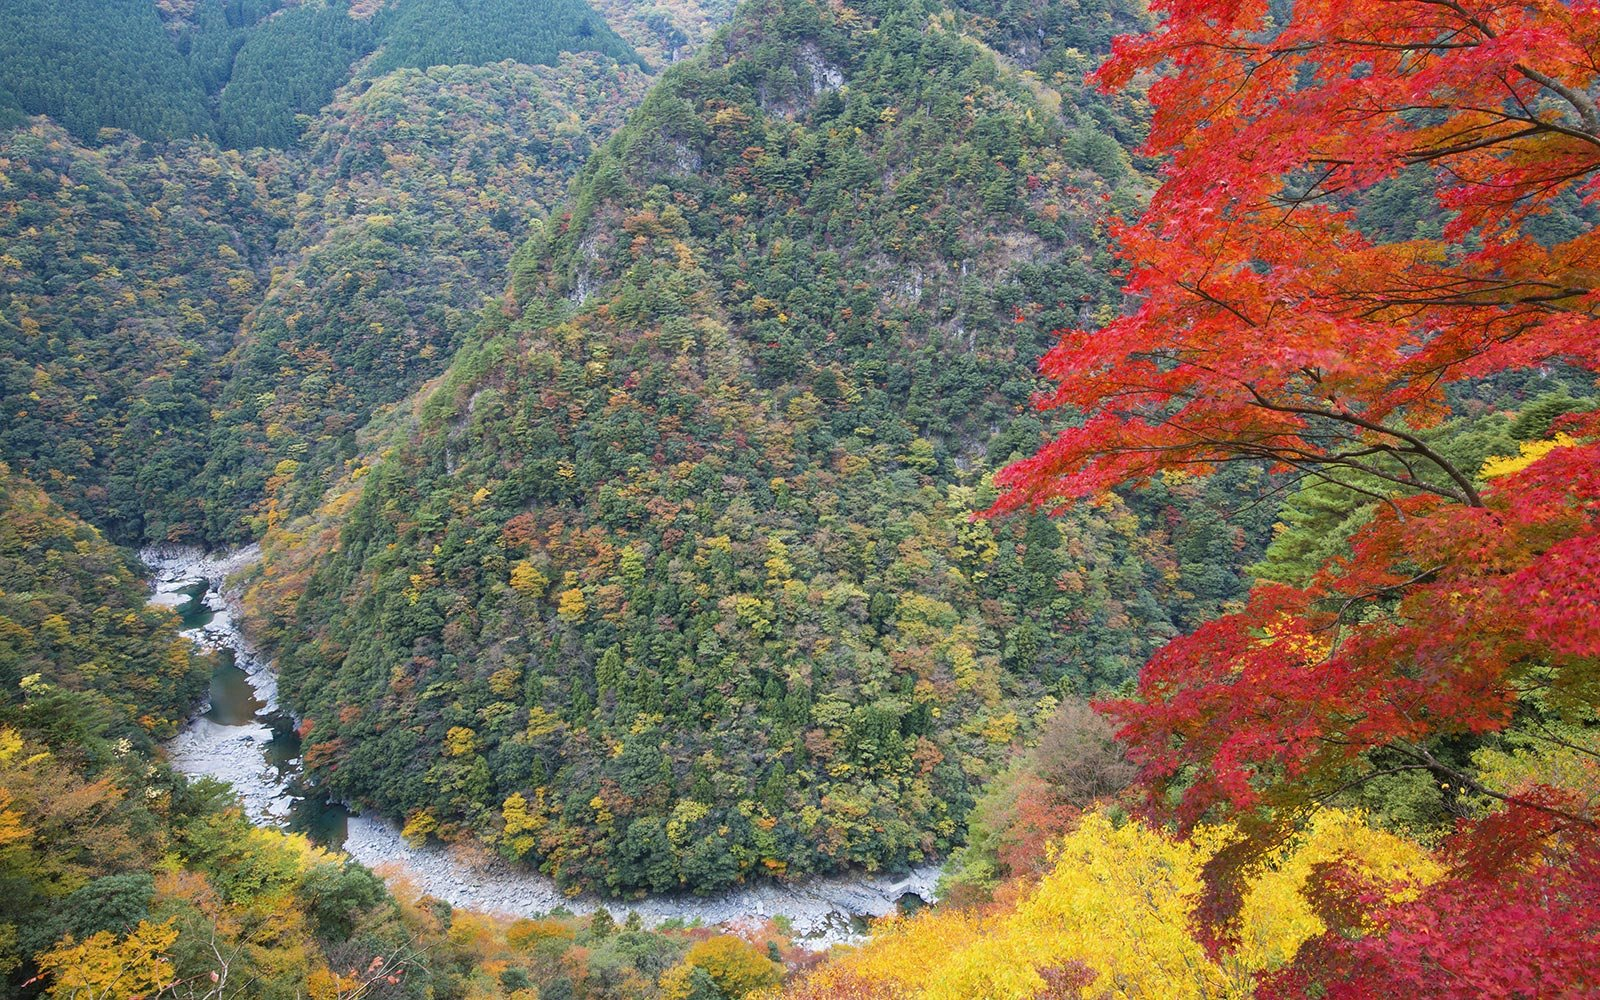 Iya Valley, Japan